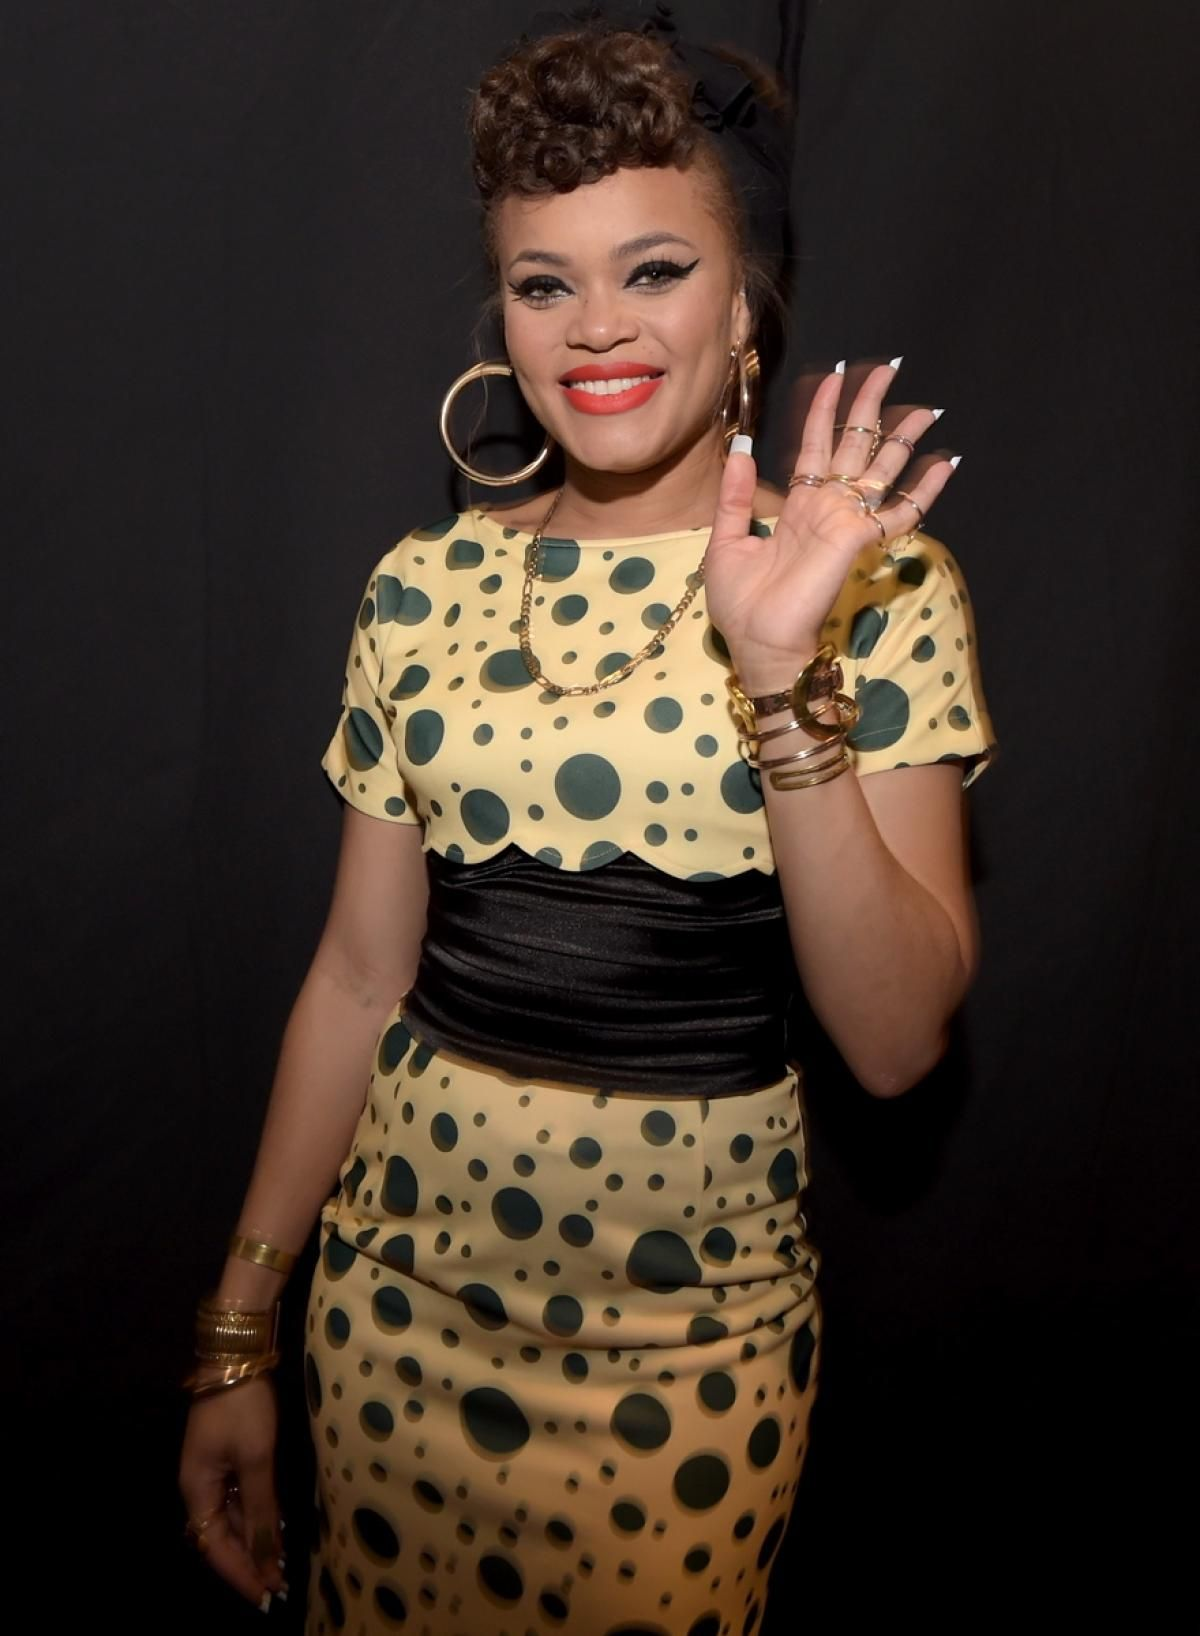 """Andra Day smiled for the cameras backstage after performing her hit song """"Rise Up,"""" from the upcoming album """"Cheers to the Fall,"""" during the show."""